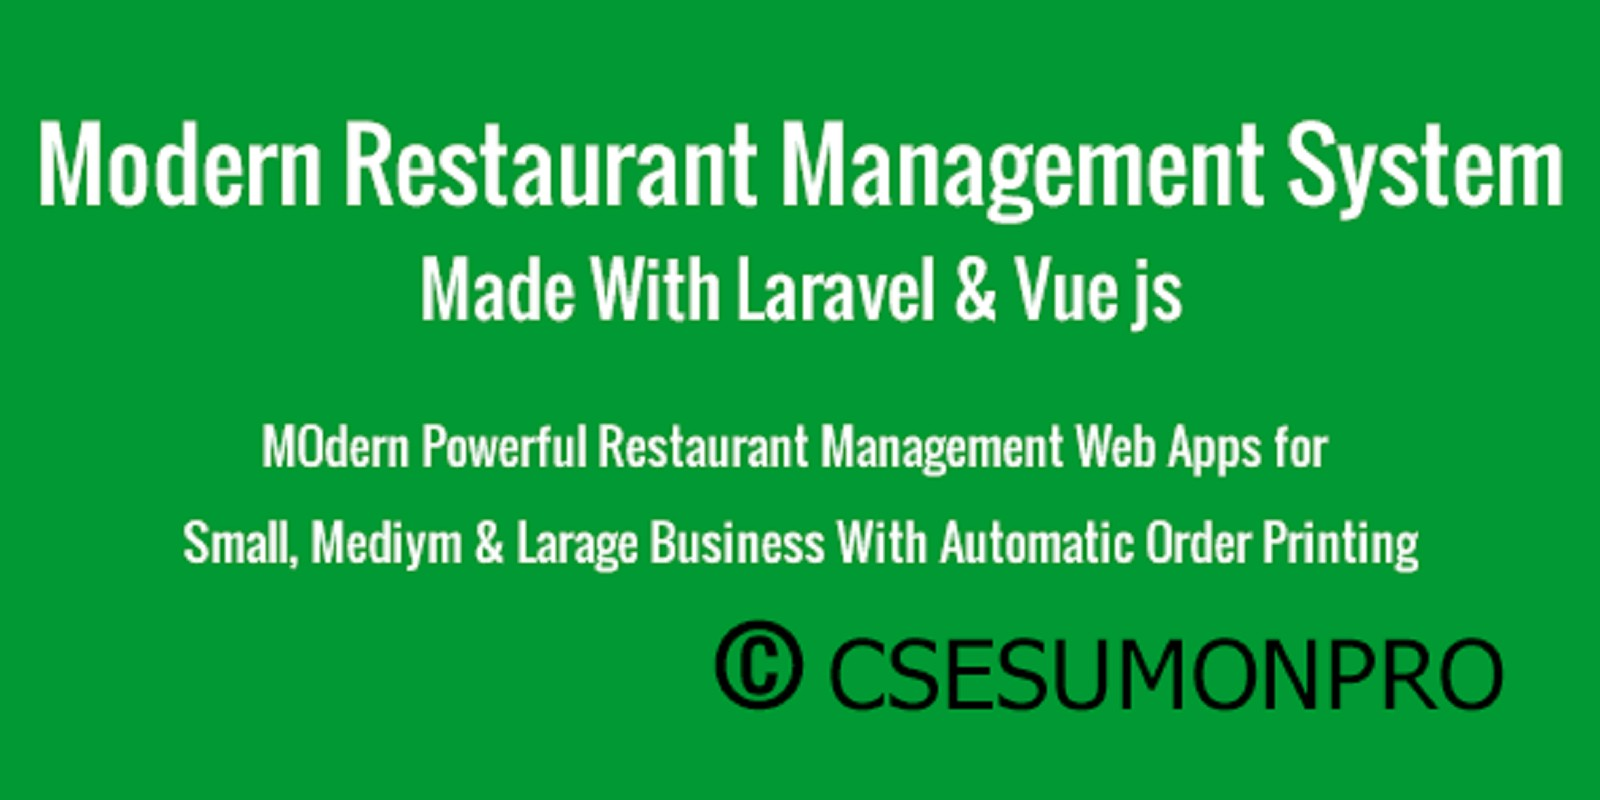 Modern Restaurant Management System